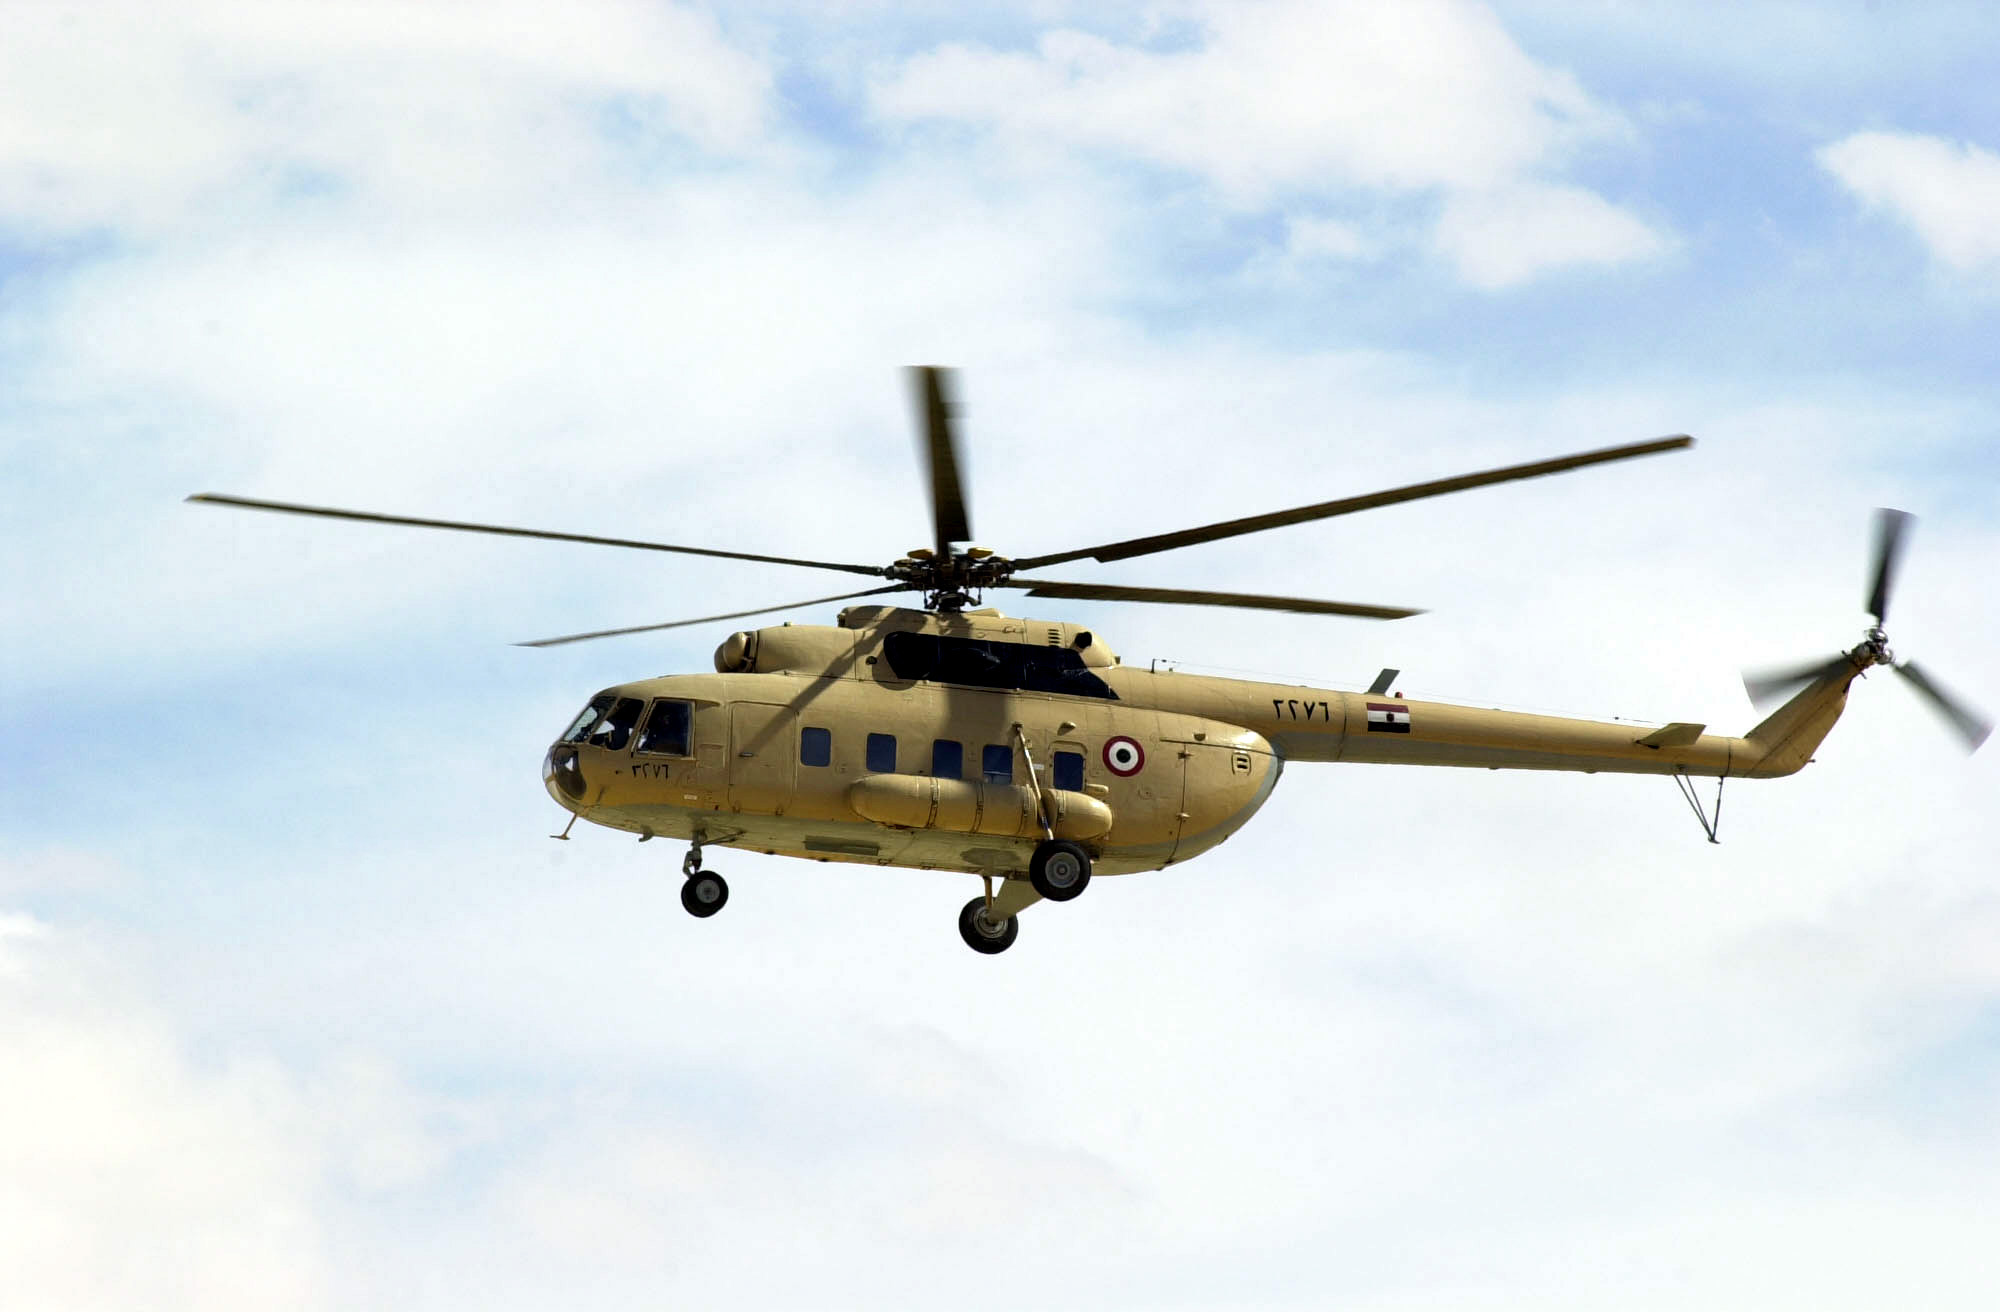 File:Egyptian Mil Mi-8 Hip helicopter.JPEG - Wikimedia Commons on mil mi-8, ah-64 apache, vietnam helicopters, mil mi-28, lockheed ac-130, russian air force, large helicopters, rc helicopters, mil mi-17, sukhoi su-27, usa helicopters, sukhoi su-34, afghan helicopters, tupolev tu-95, weird helicopters, kamov ka-50, attack helicopter, military helicopter, hawaii helicopters, era helicopters, russia sending syria attack helicopters, mikoyan mig-29, sukhoi su-35, sikorsky uh-60 black hawk, hq helicopters, eurocopter tiger, hh helicopters, ch helicopters, sukhoi su-24, sukhoi su-25, russian helicopters, kazan helicopters, girls who pilot helicopters, sukhoi su-30, do helicopters, mil mi-26, saudi helicopters, modern attack helicopters, us navy helicopters, military helicopters,